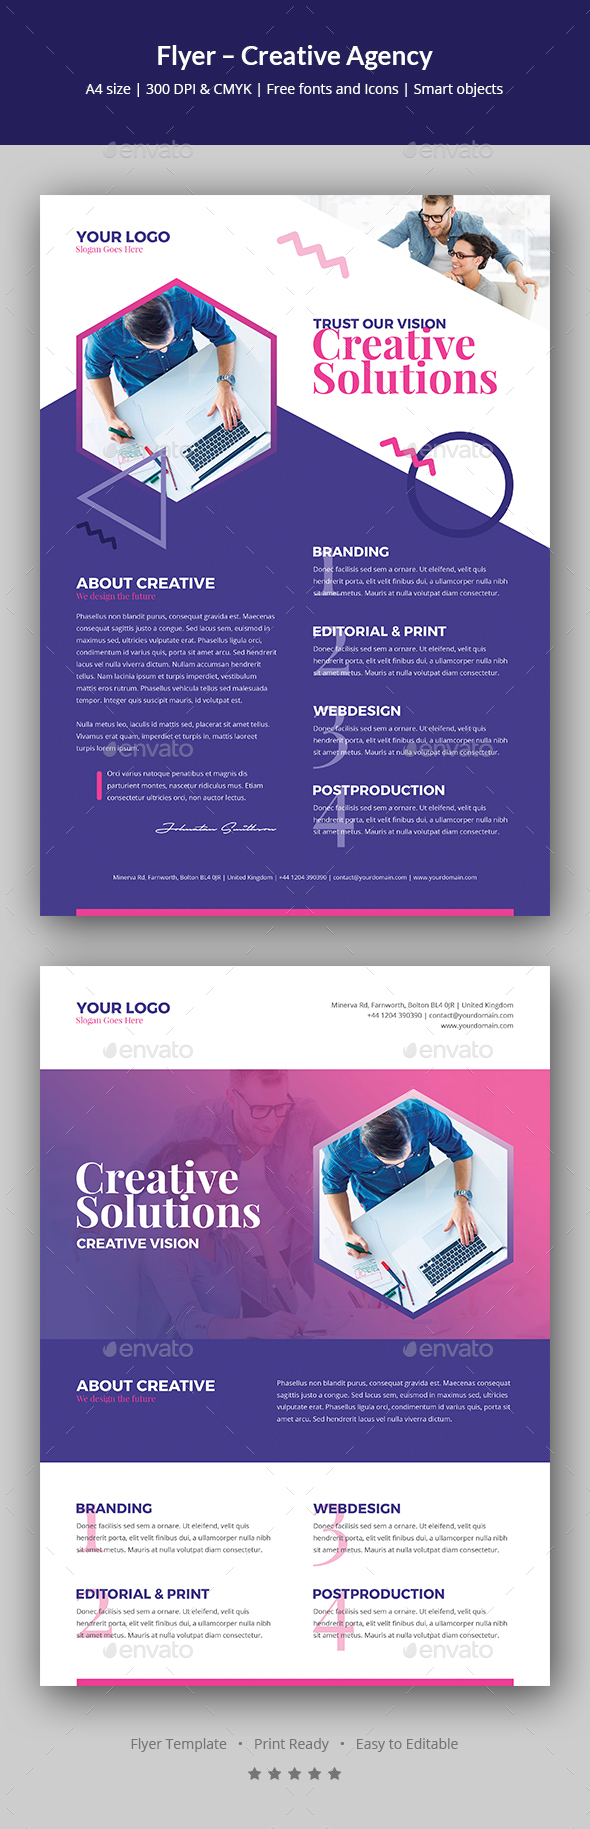 Flyer – Creative Agency